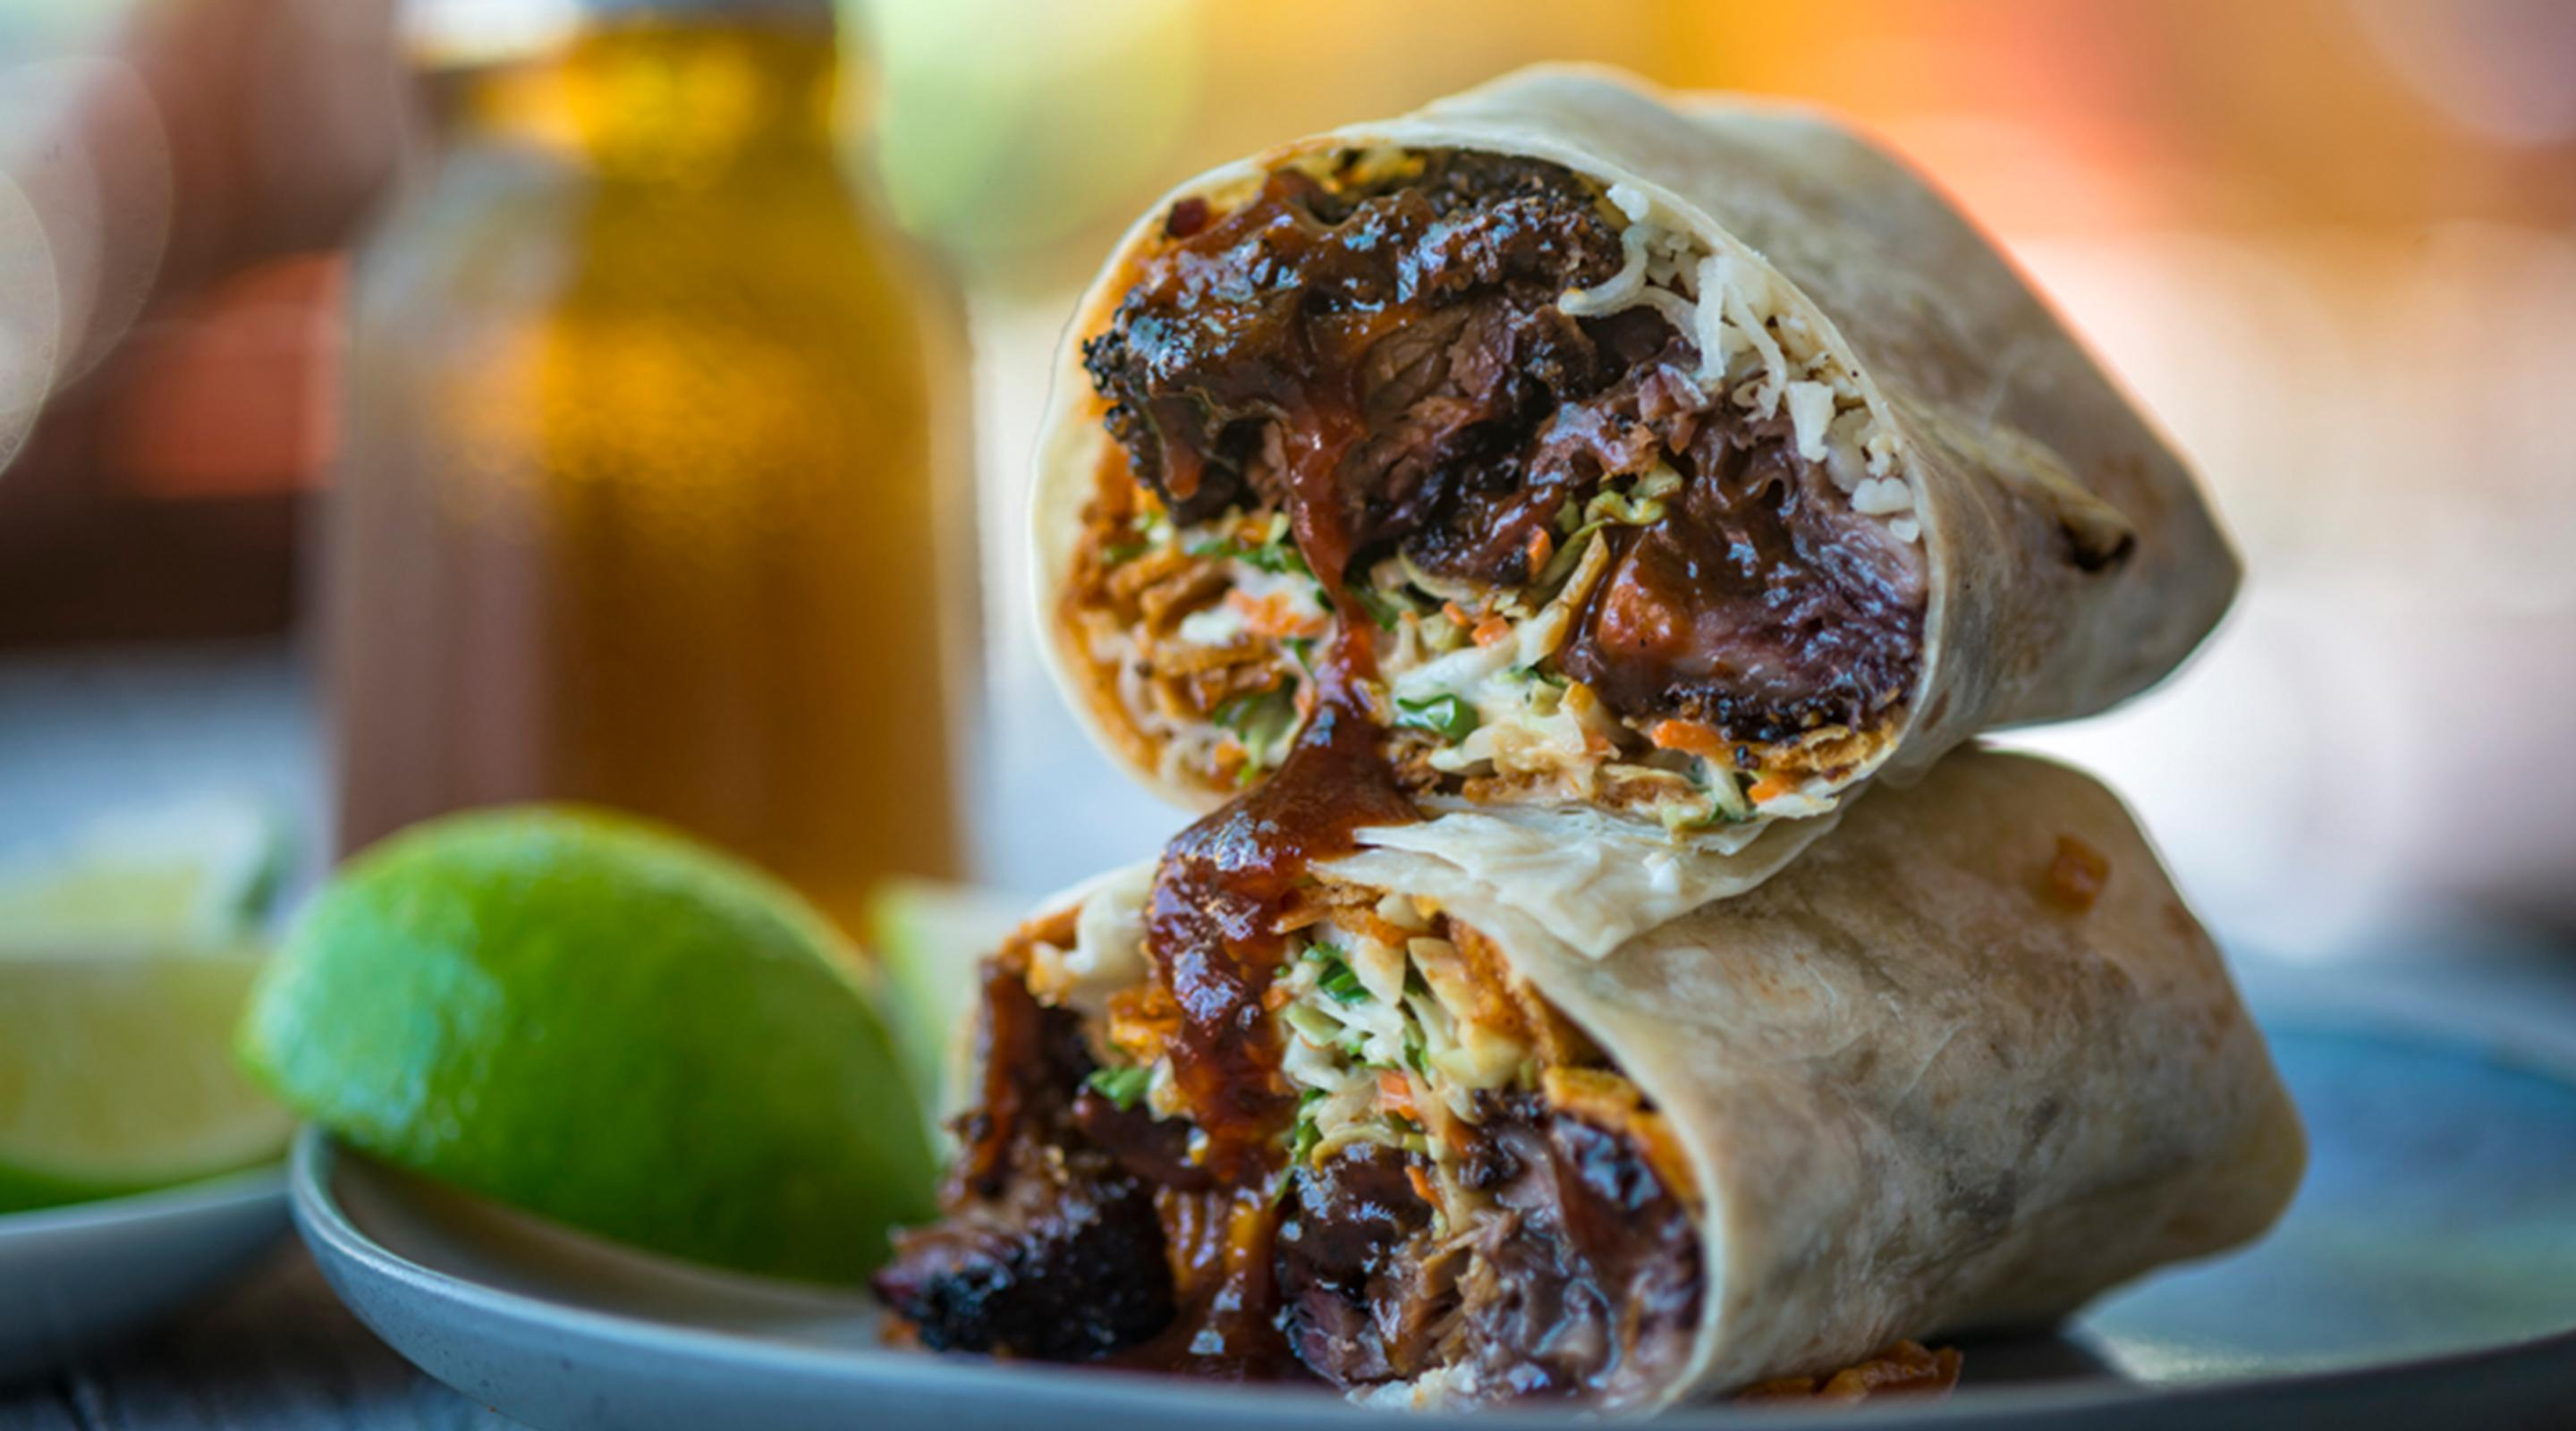 Burnt Ends Burrito, available at BBQ Mexicana.